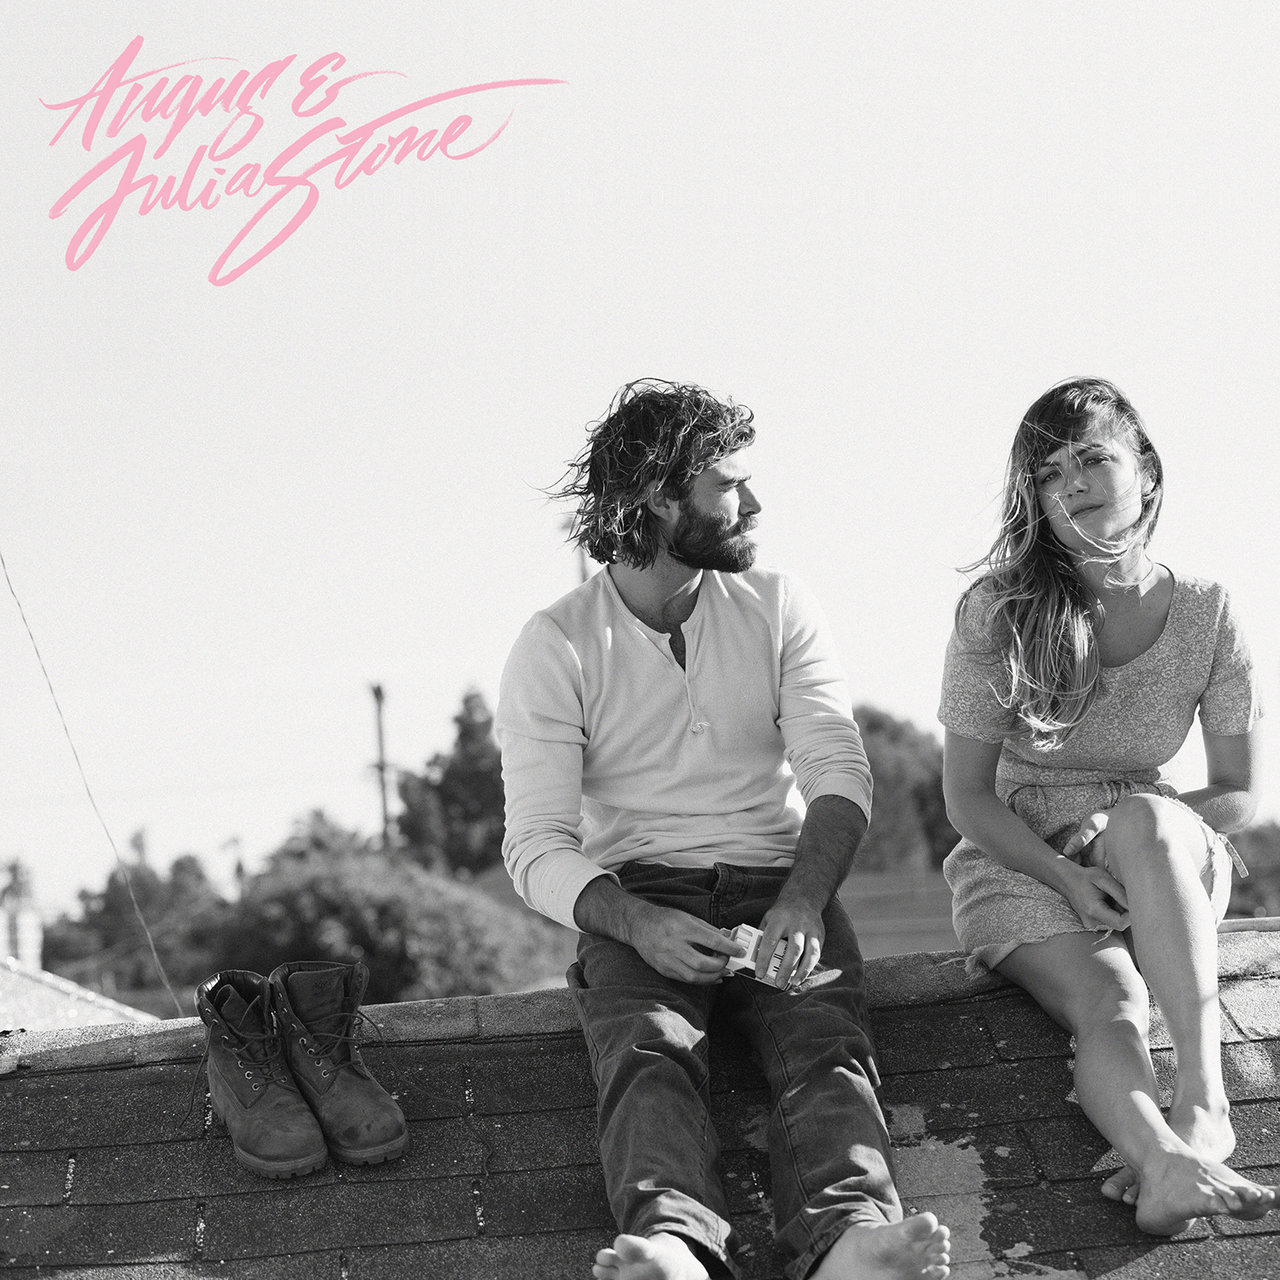 Listen To Angus Julia Stone Deluxe By Angus Stone On Tidal